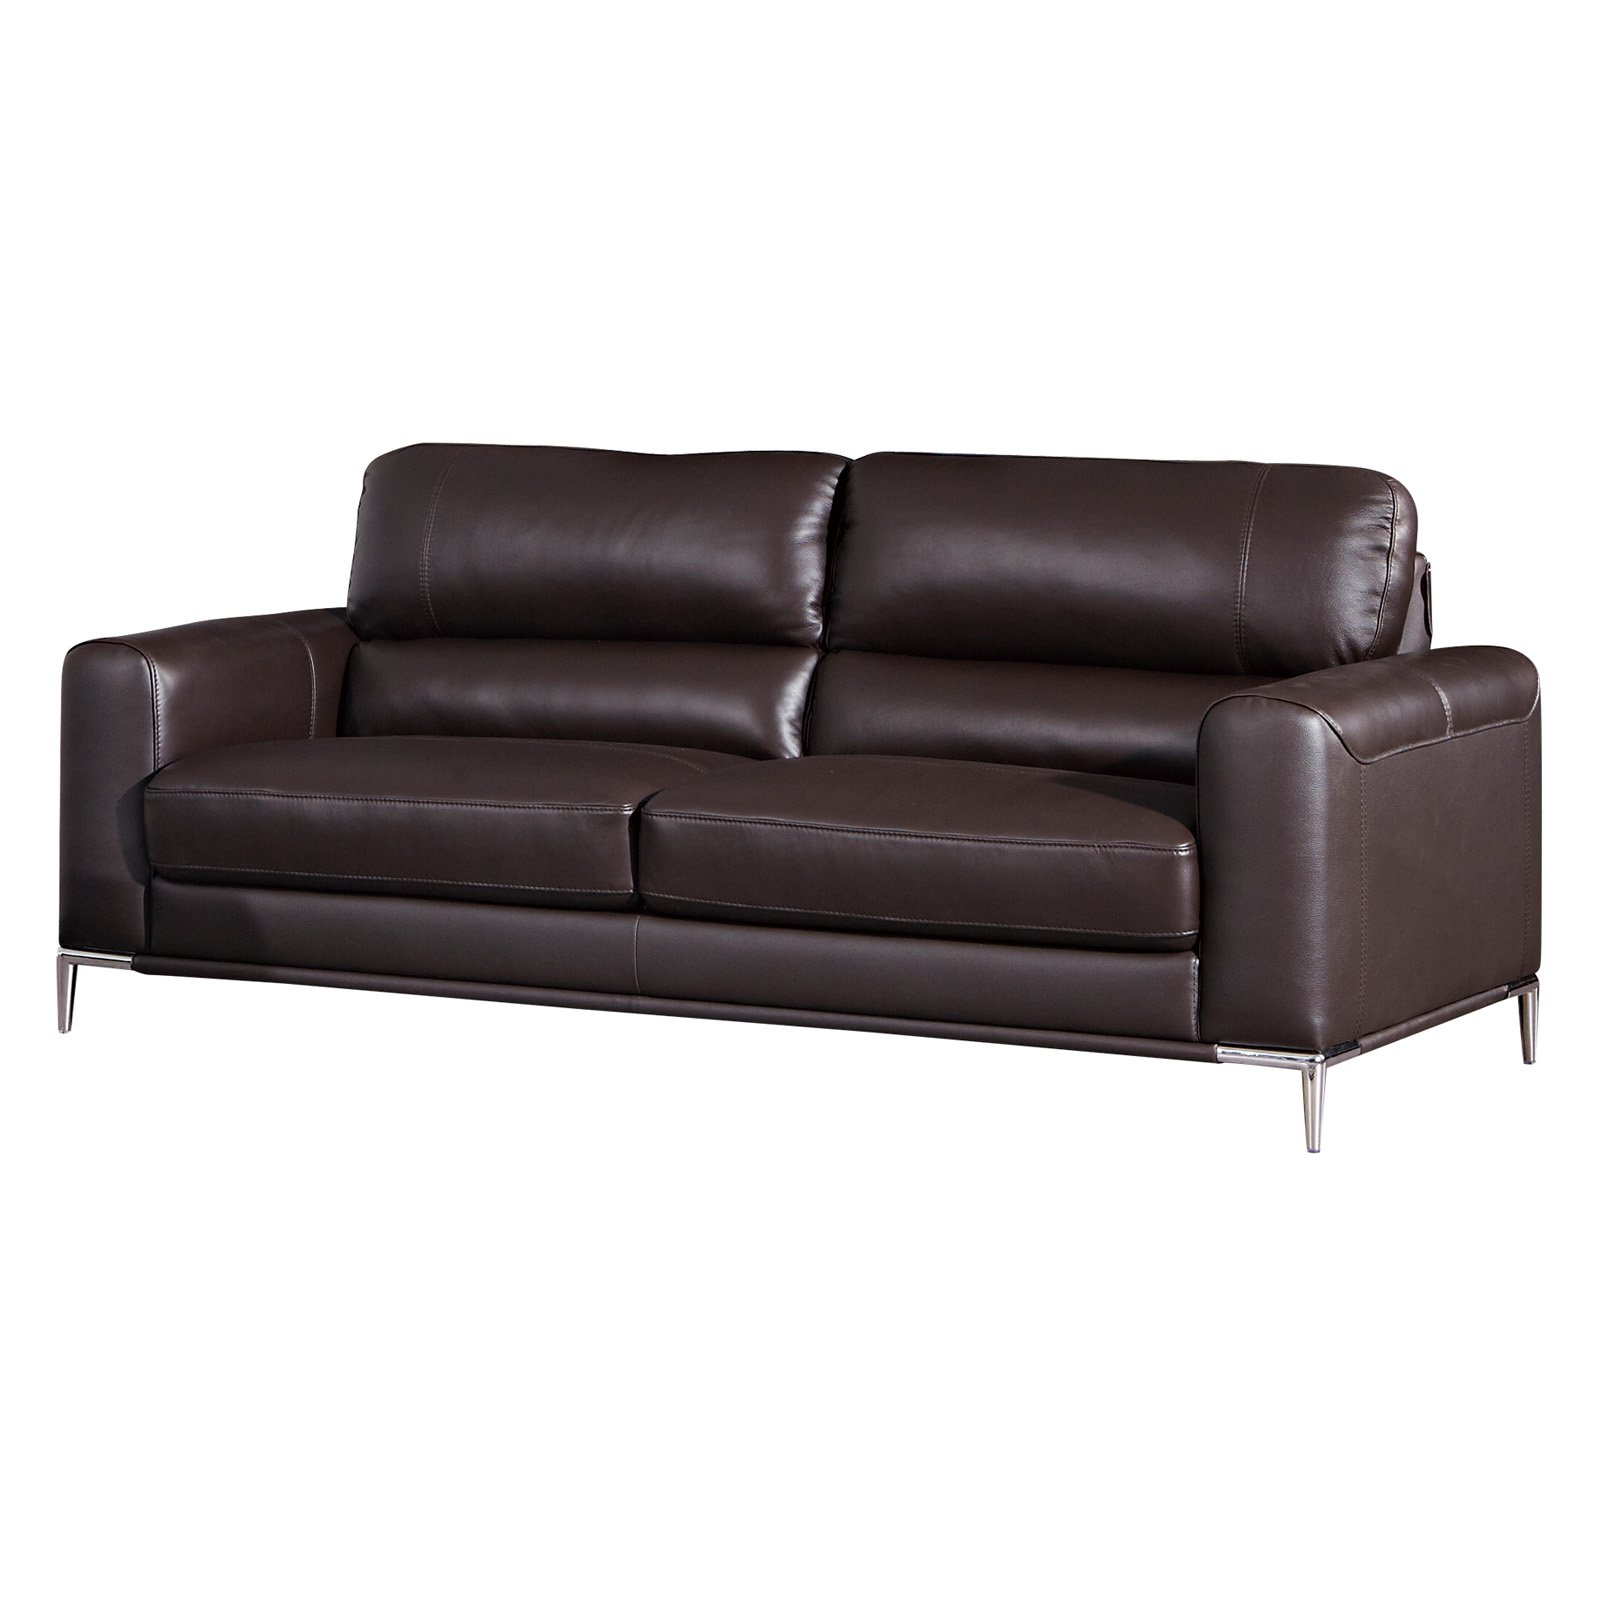 American Eagle Furniture Rodeo Leather Sofa